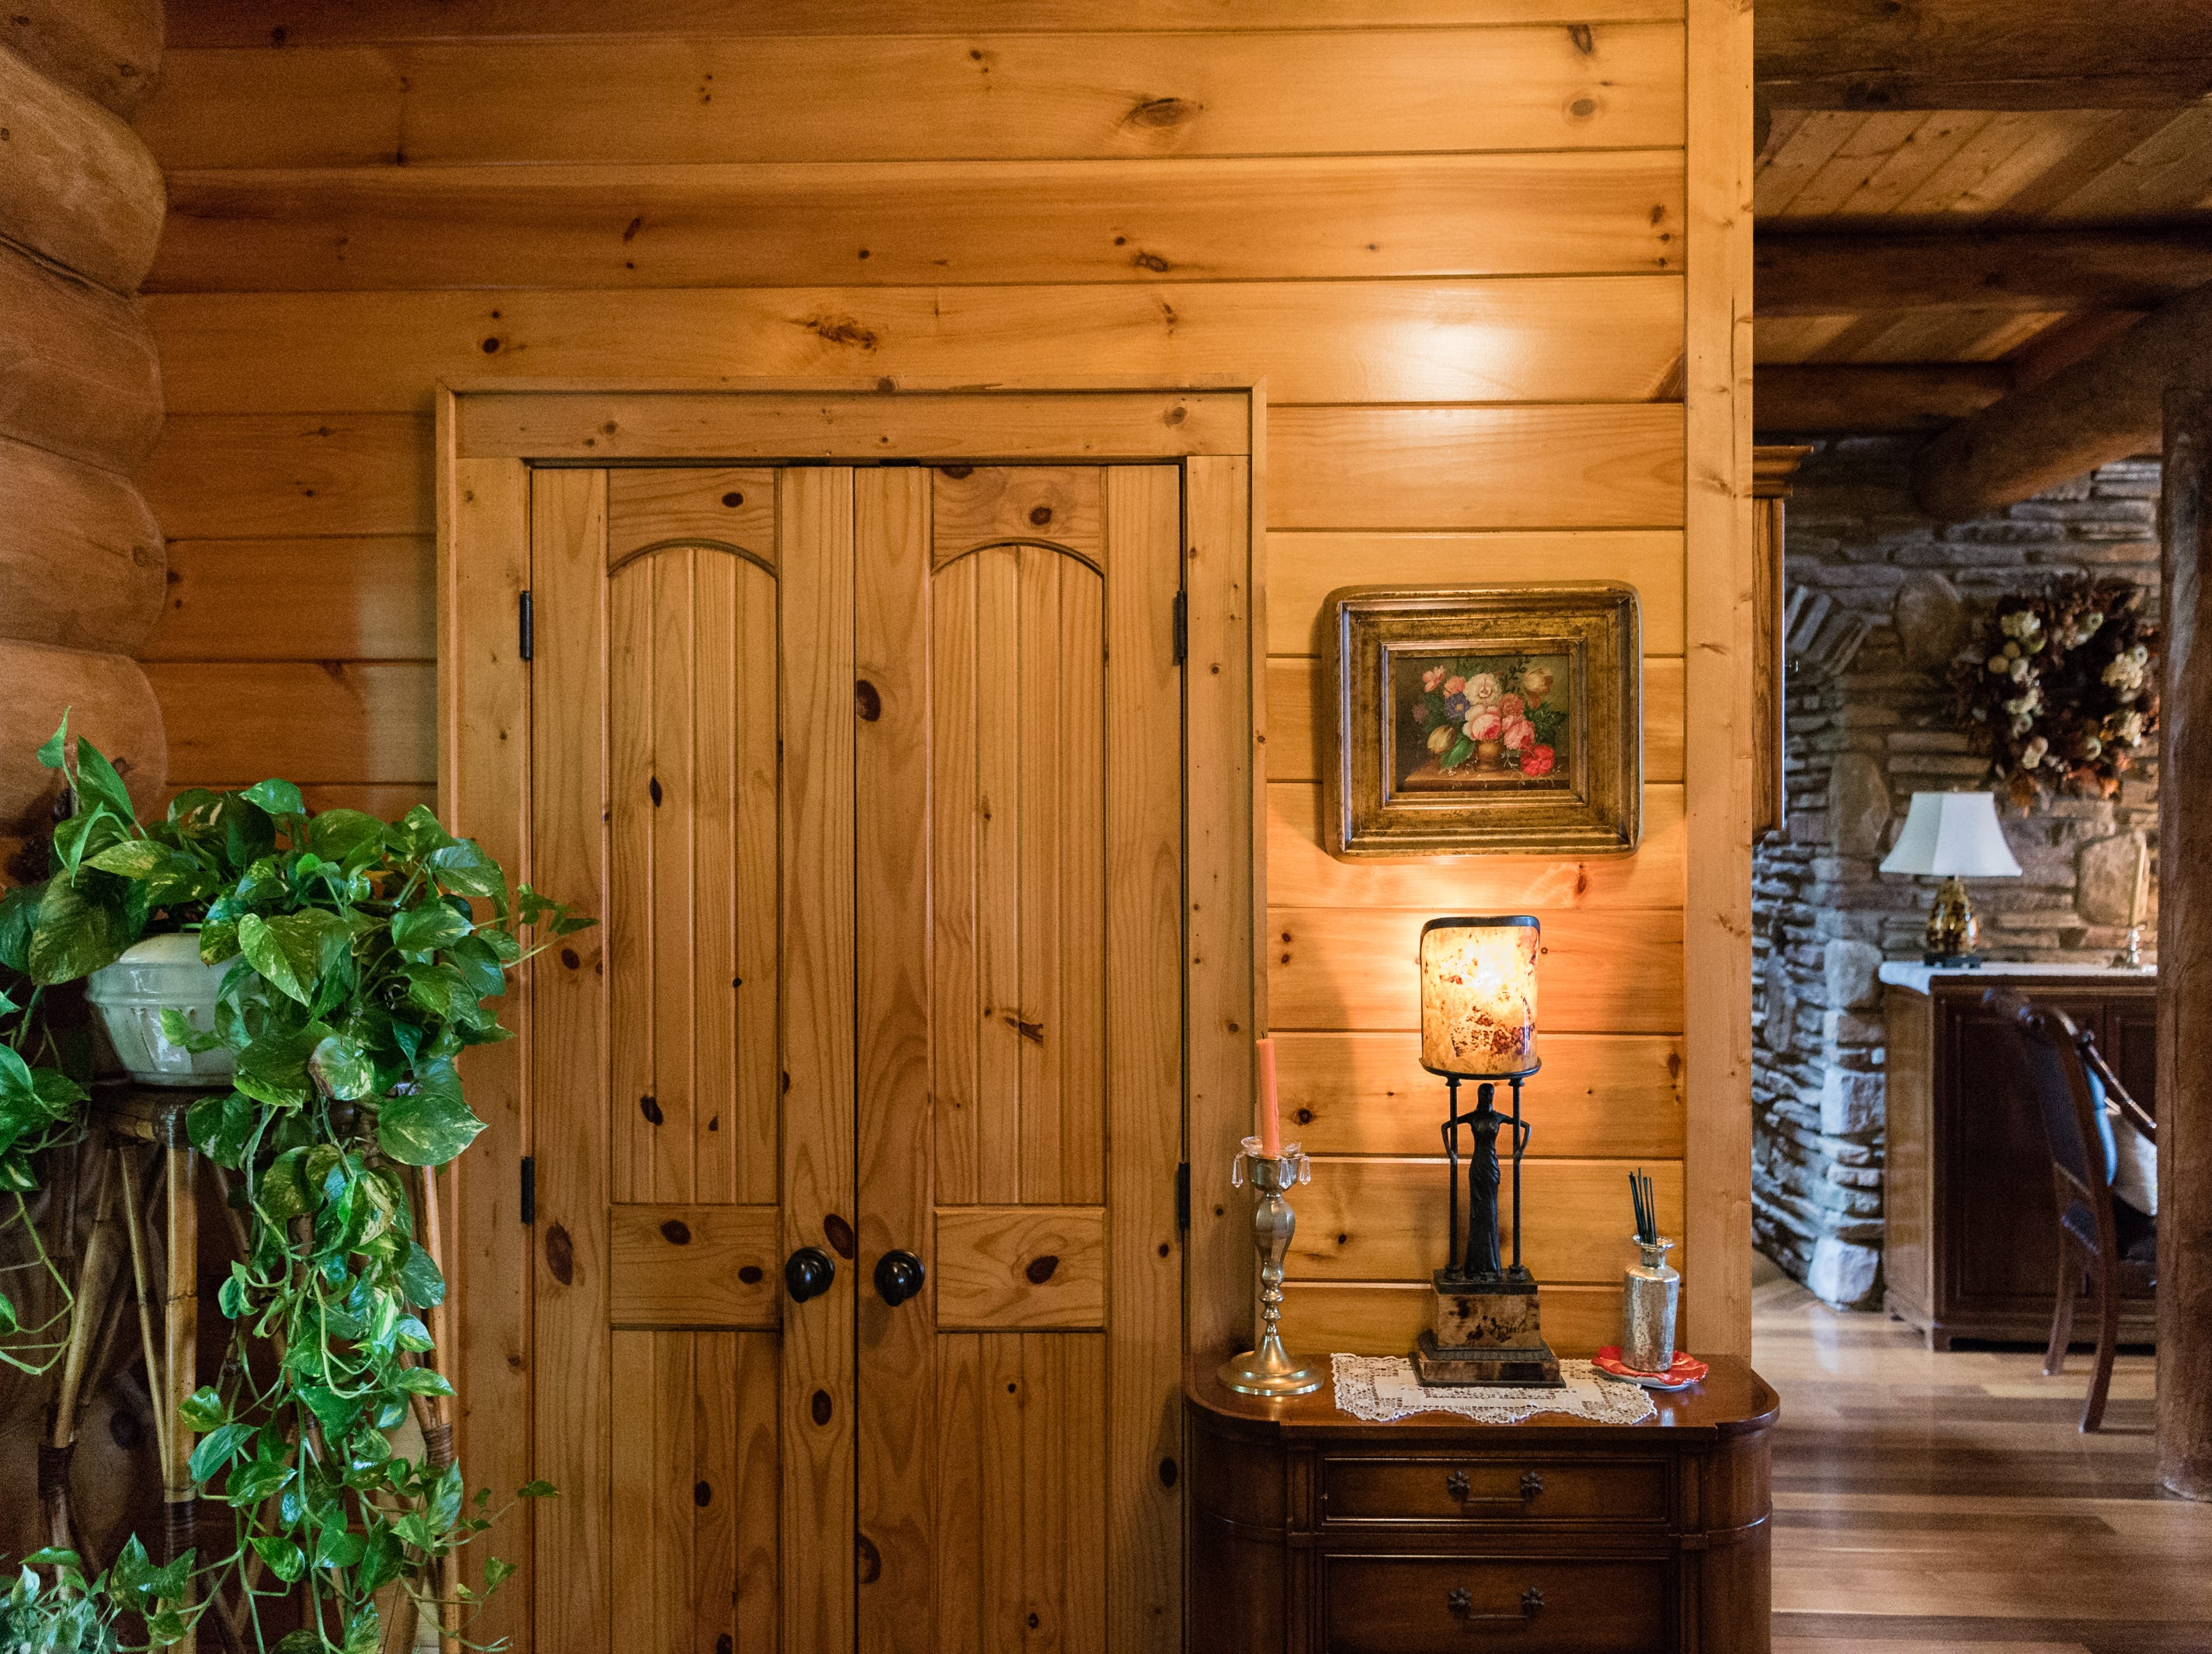 The foyer of Dan and Belle Fangmeyer's log cabin in Waynesville.